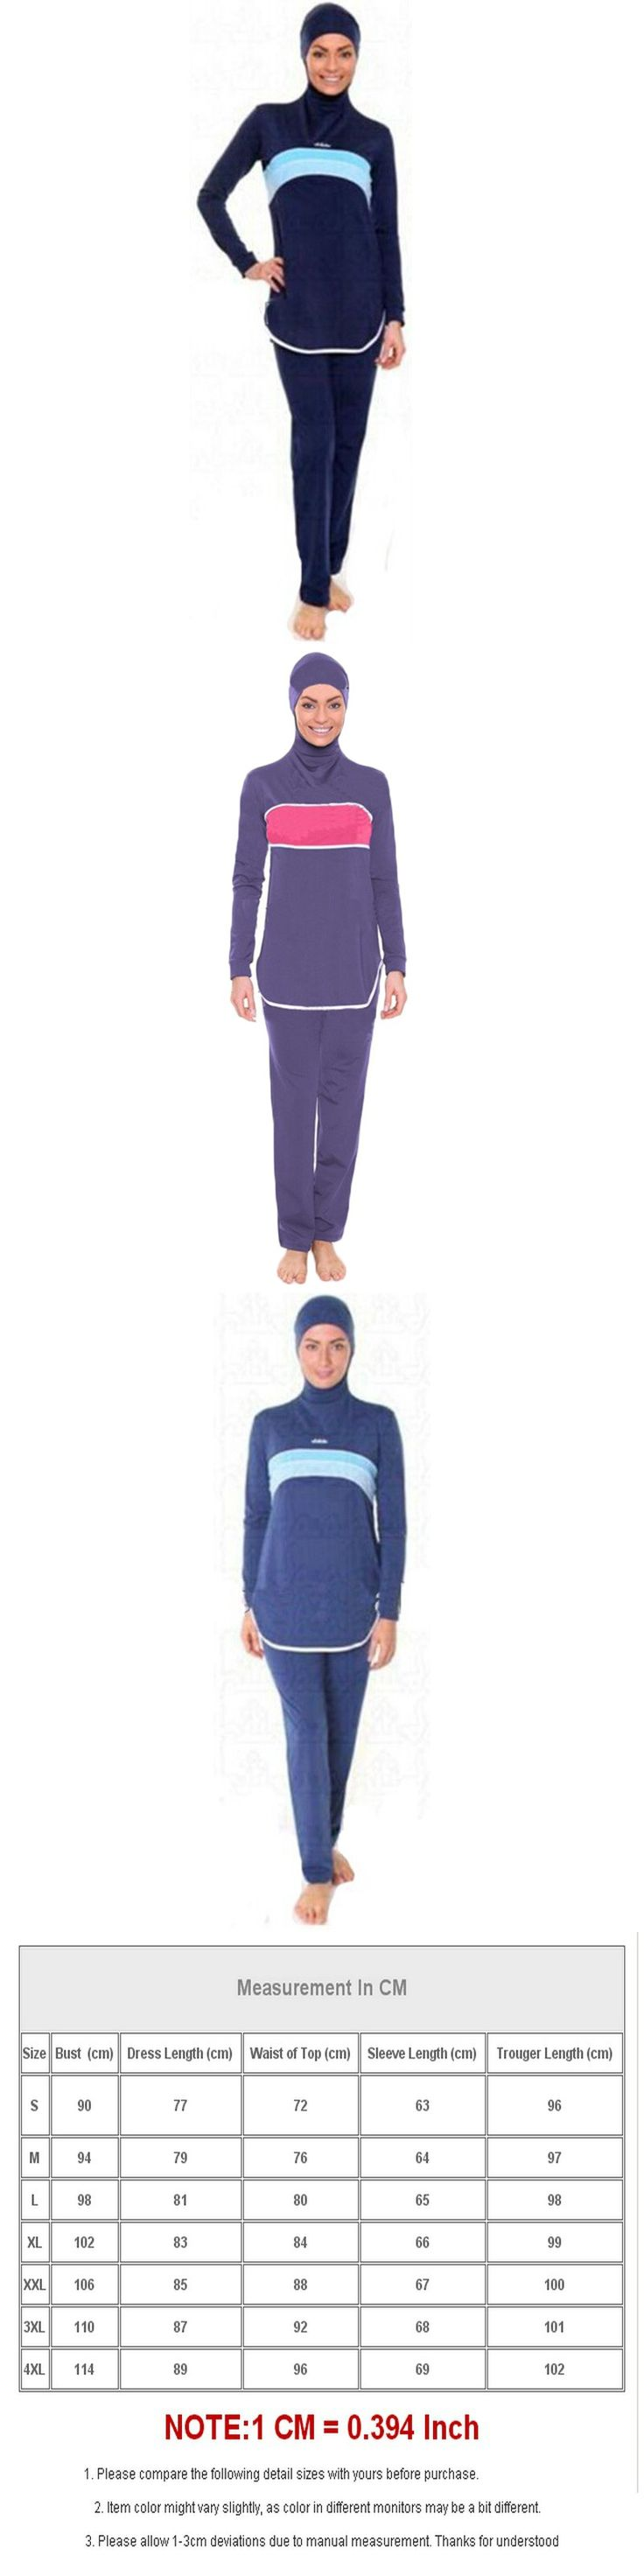 Modest Muslim Swimwear Islamic Swimsuit For Women hijab swimwear full coverage swimwear muslim swimming beachwear swim suit $48.98